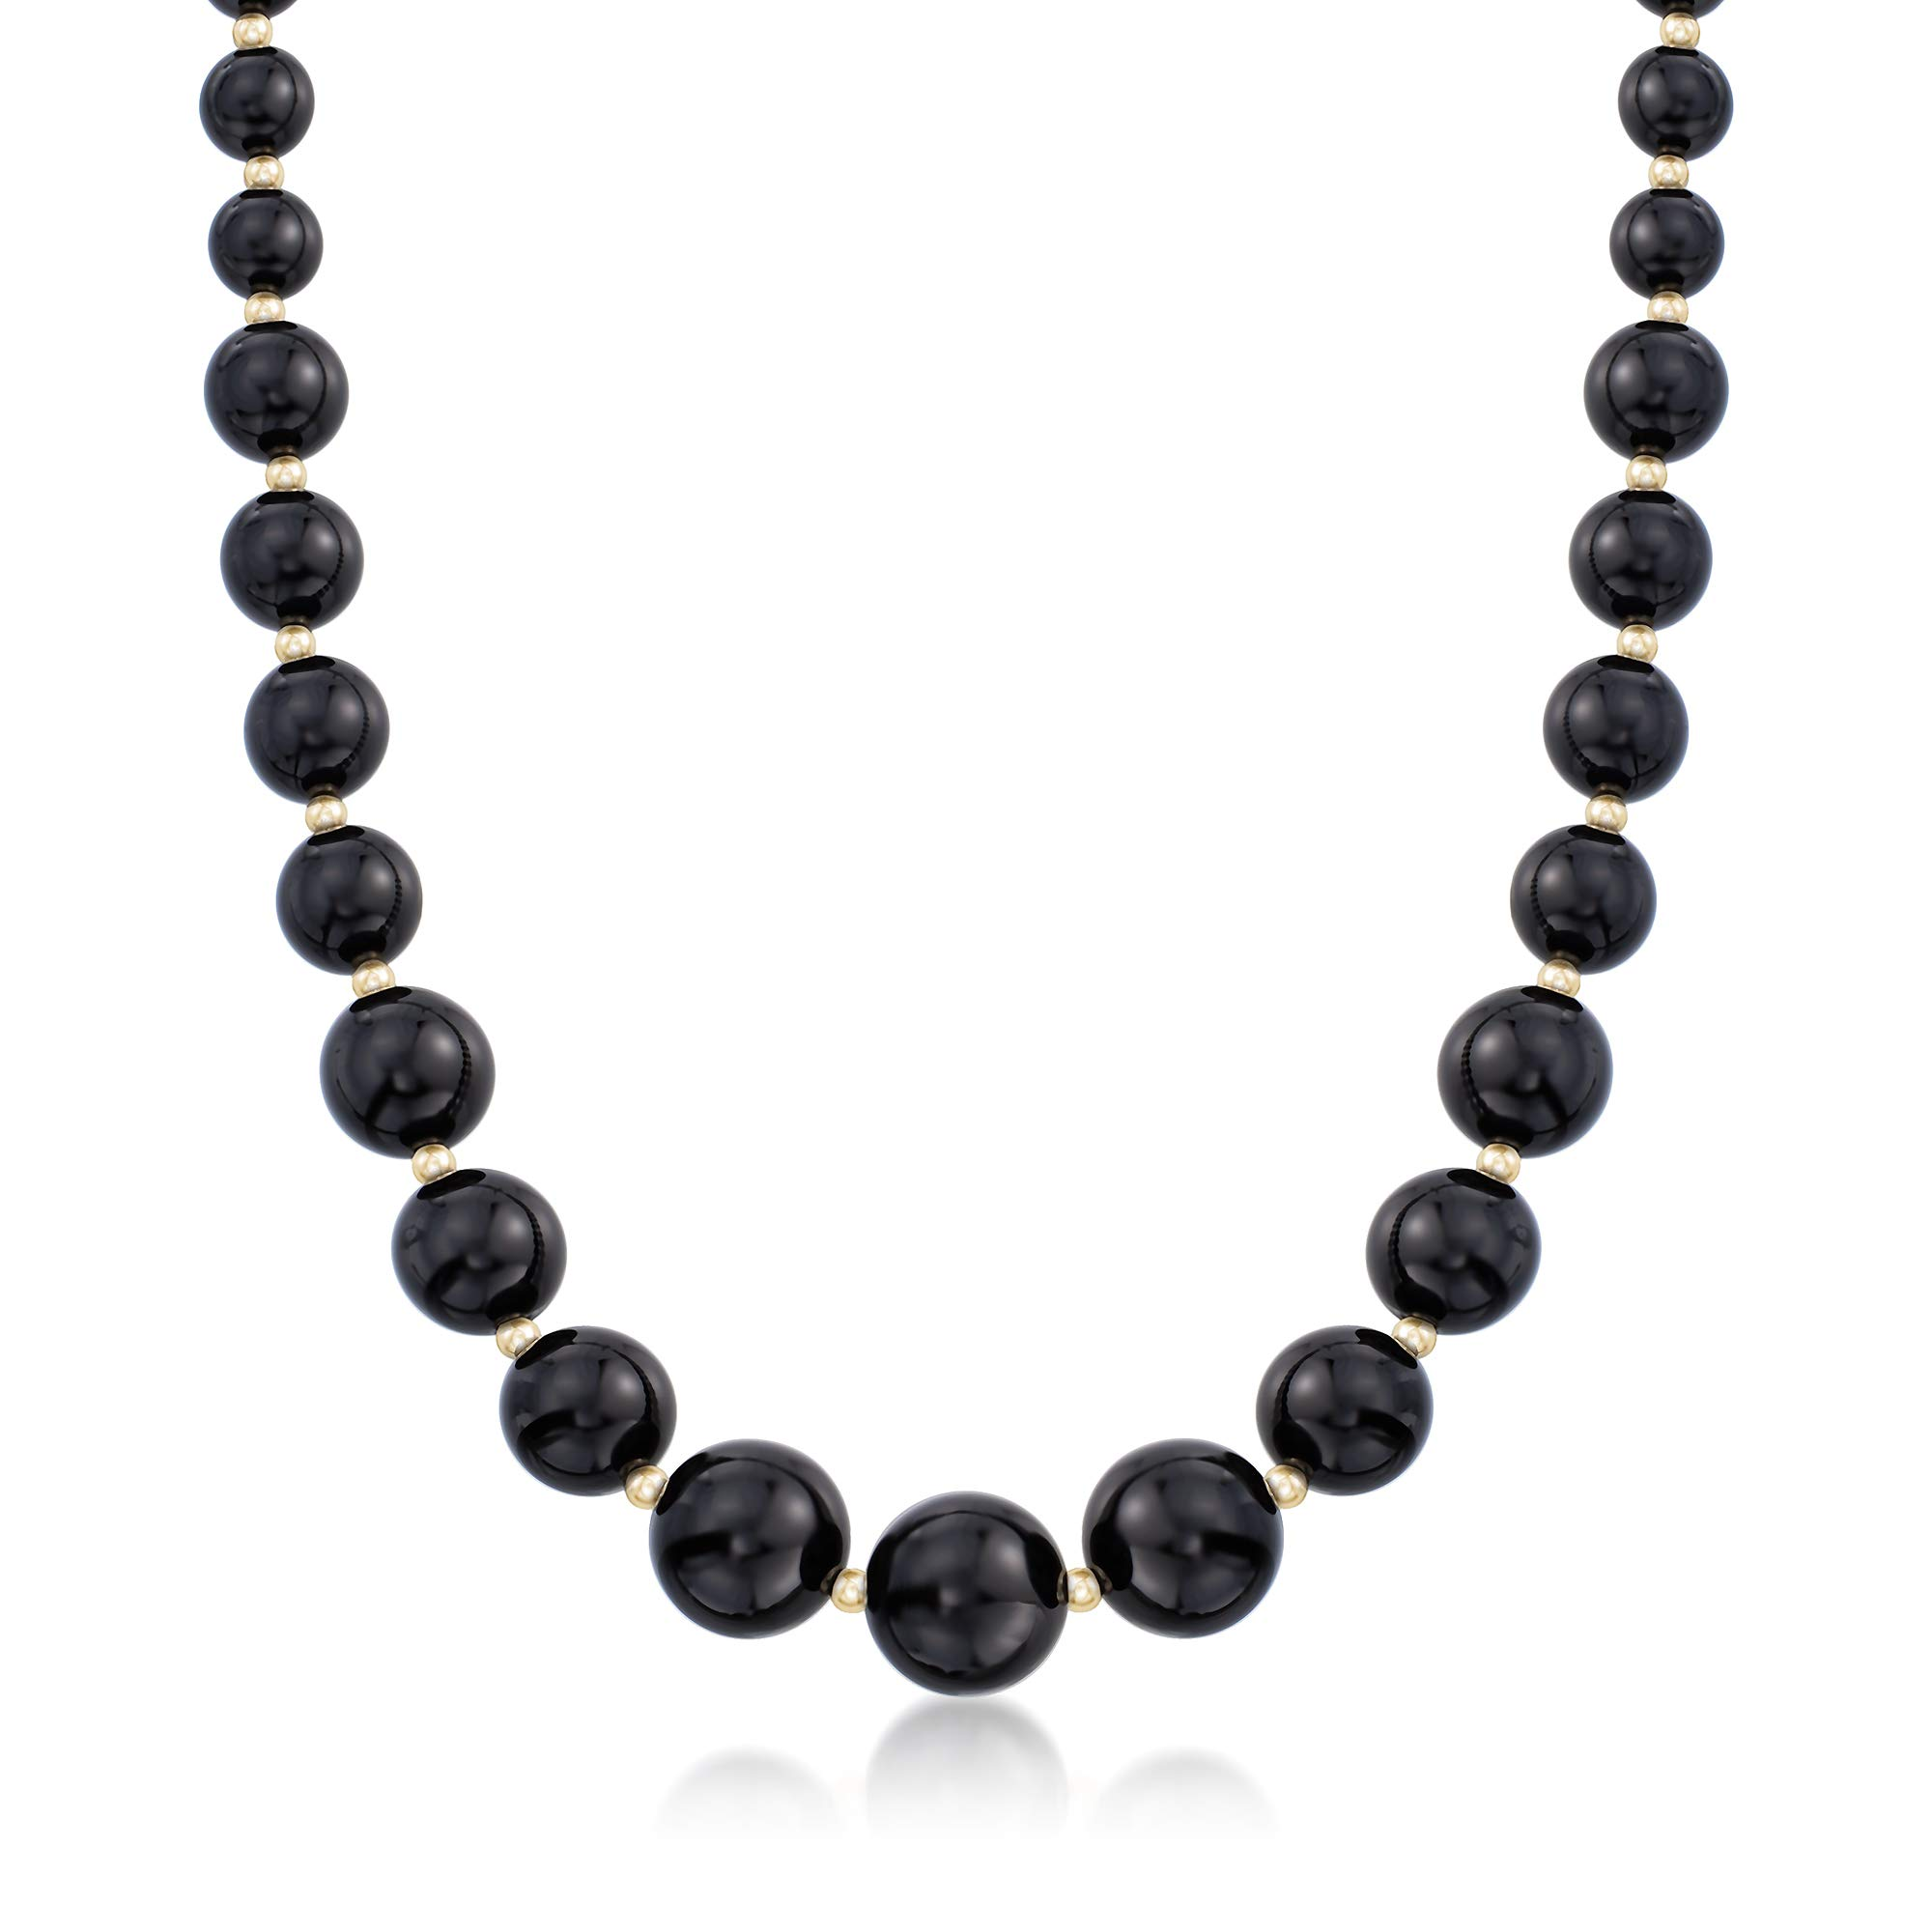 Ross-Simons 6-14mm Black Onyx Graduated Necklace in 14kt Yellow Gold